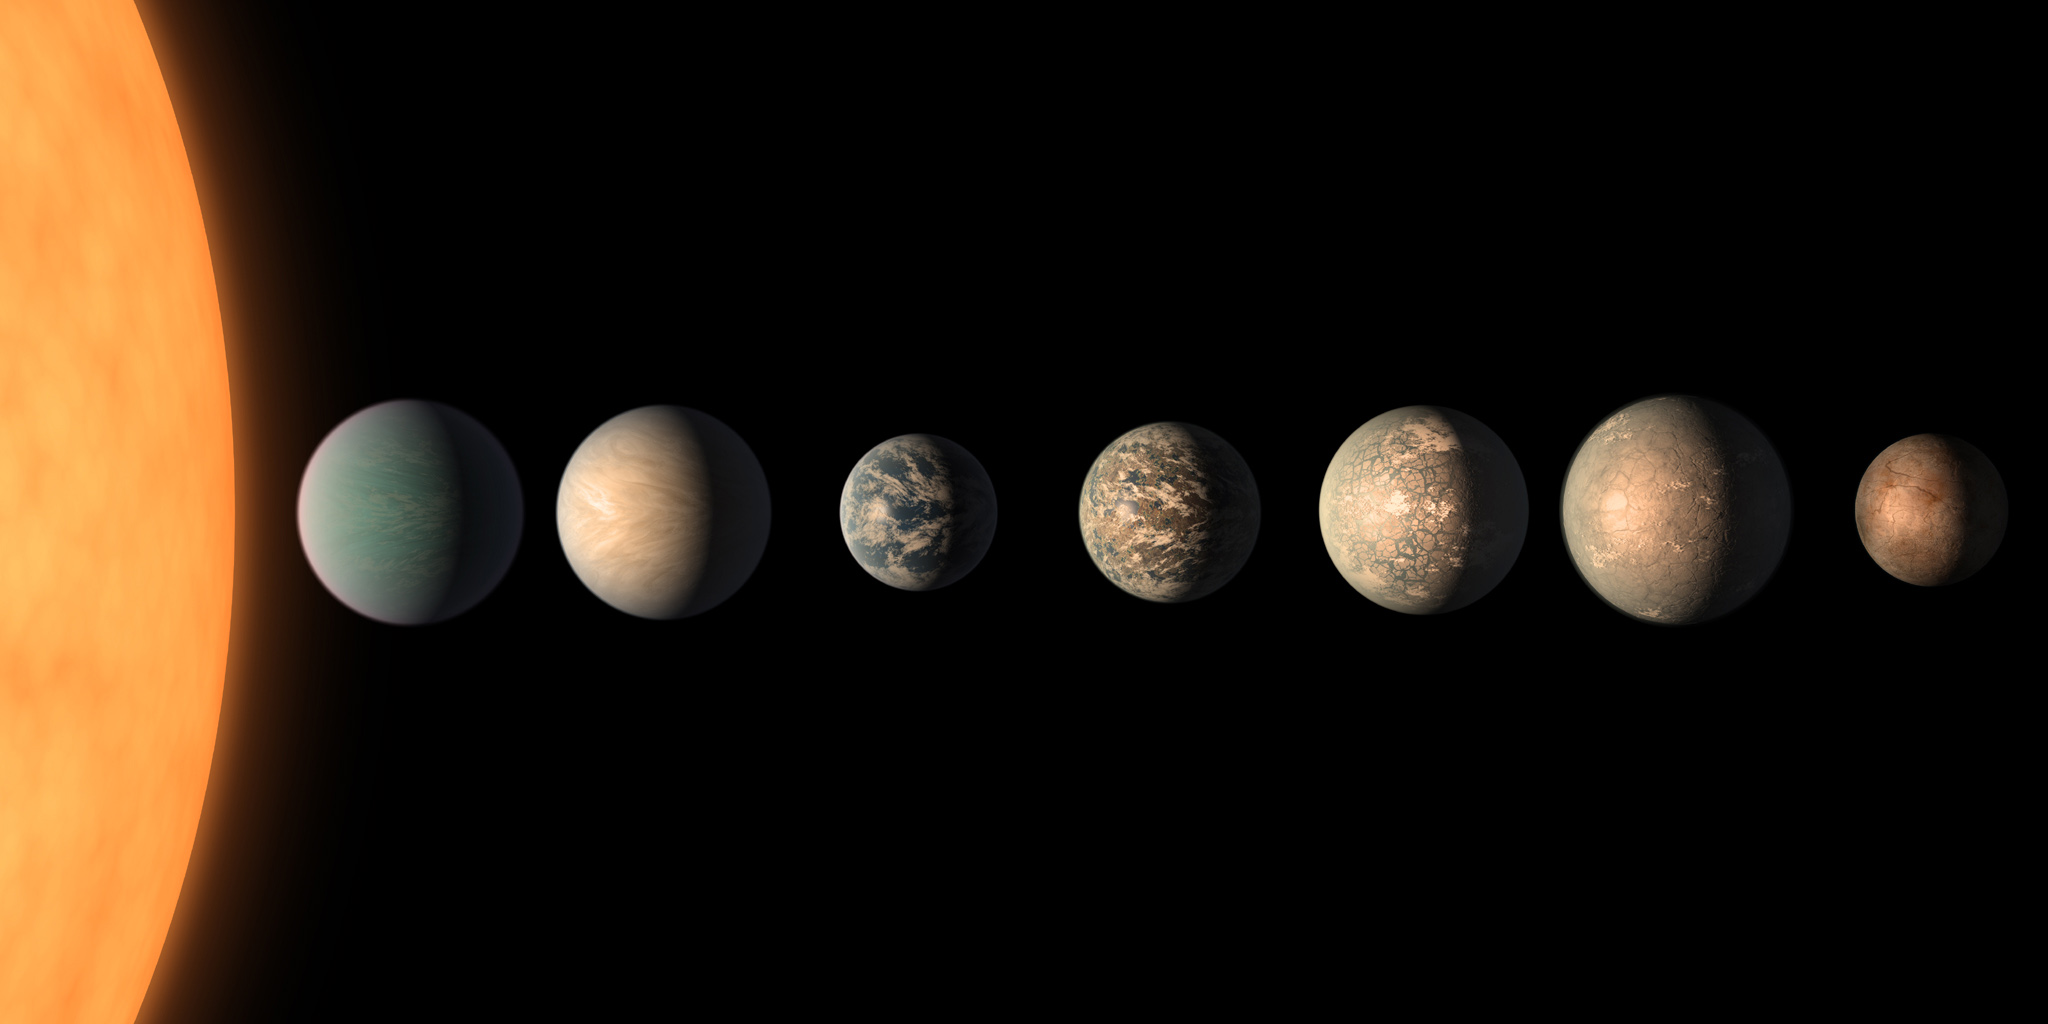 New Study Shows Trappist 1 Planets Are Rocky And Could